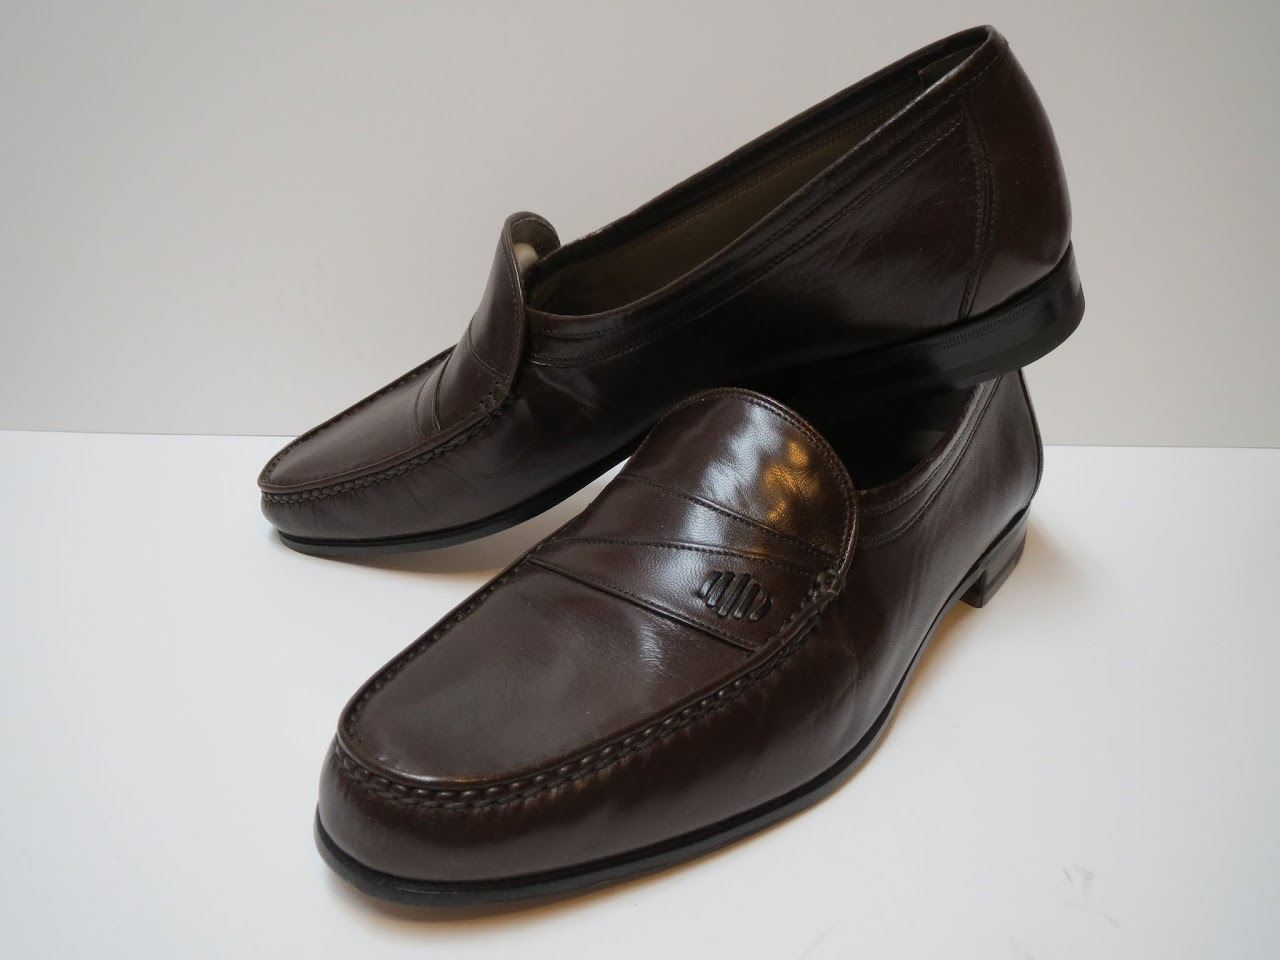 Bally Loafers in Chocolate Brown